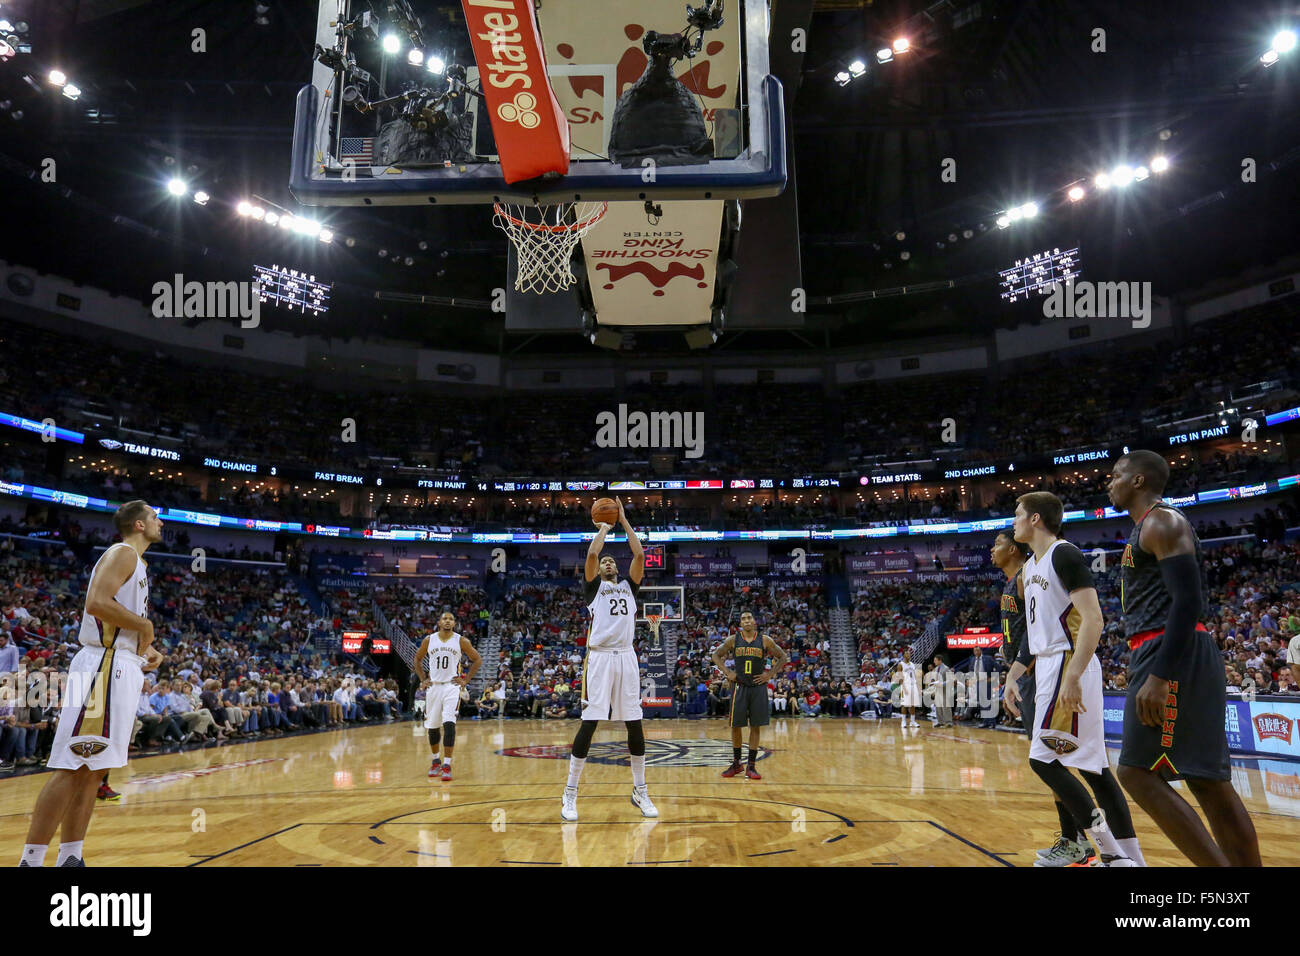 New Orleans La Usa 6th Nov 2015 New Orleans Pelicans